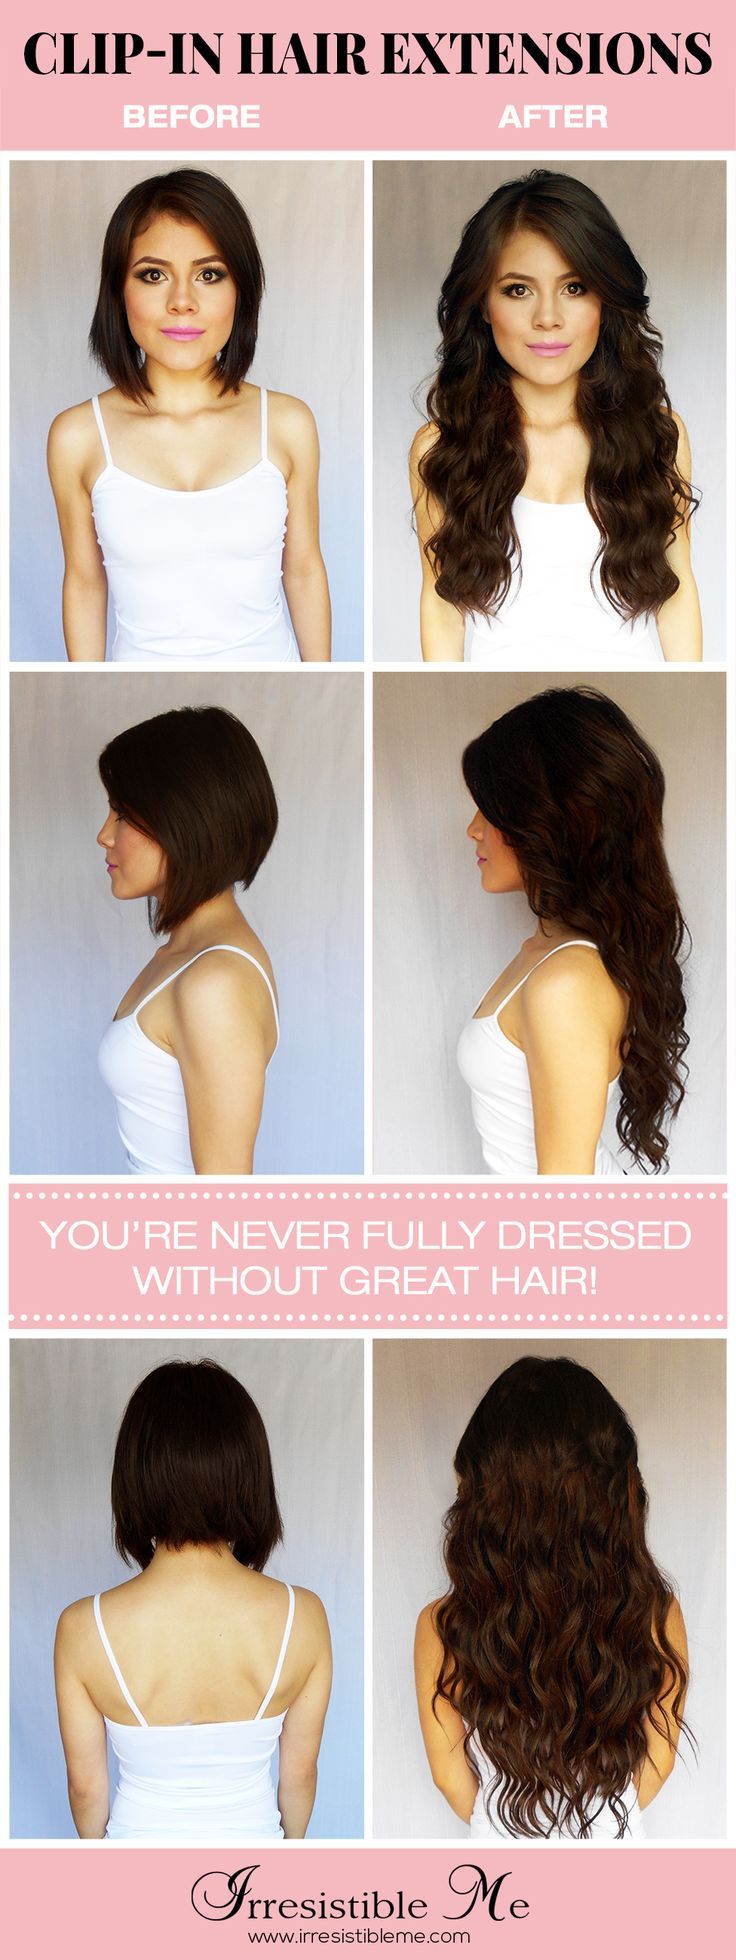 Get long hair in less than 5 minutes with Irresistible Me 100% human Remy clip-in hair extensions. The before and after change is totally awesome and nobody will know you're wearing hair extensions. Can be cut, dyed and heat styled. Worldwide delivery, free exchanges and returns. Big Valentine's Day SALE on site between January 25th - February 14th 2016!